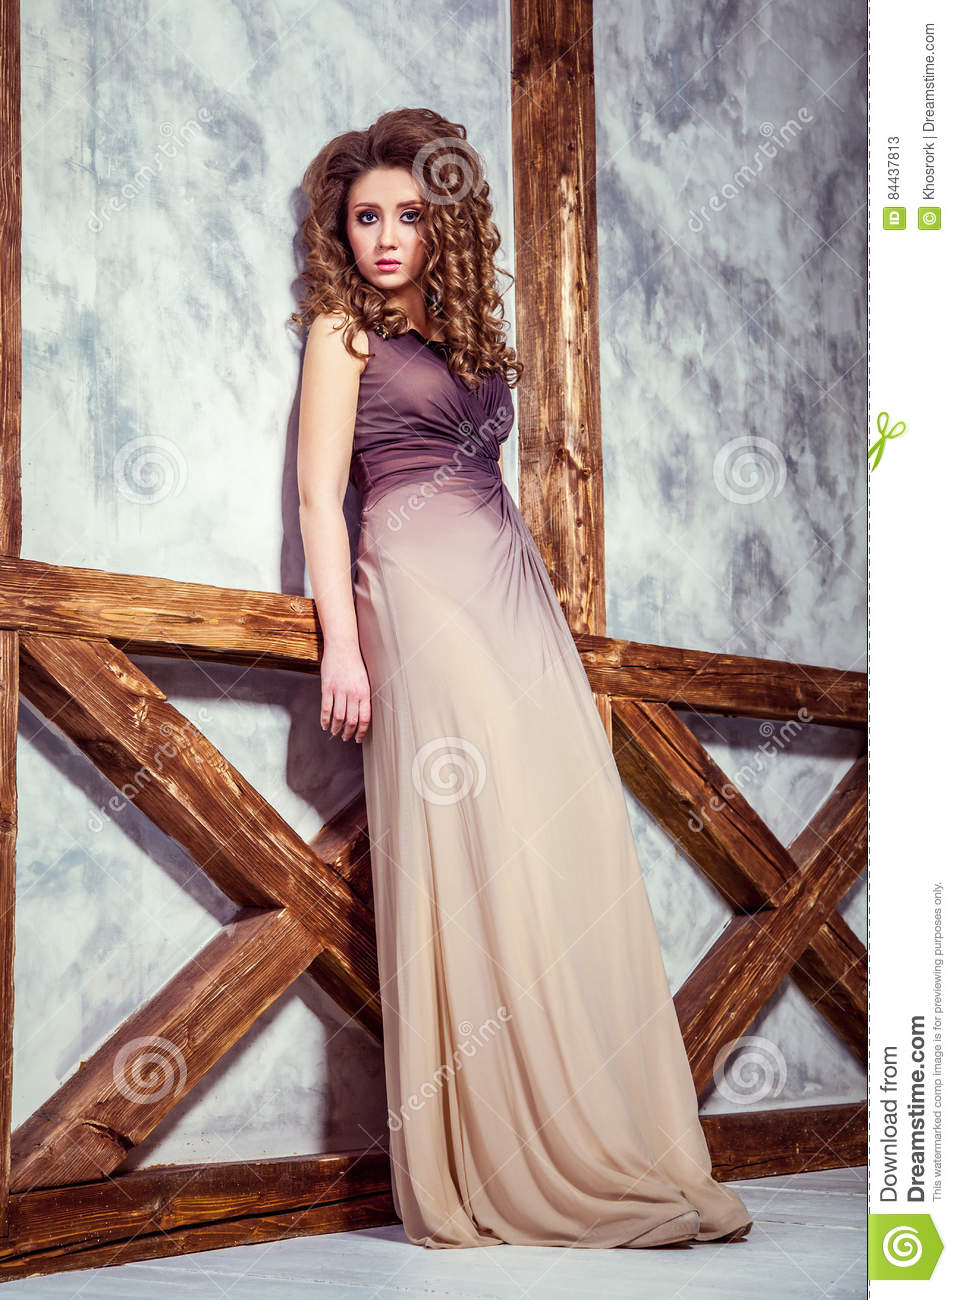 Fashion Model With Long Dress And Curly Hairstyle And Makeup Posing Near Wall With Wooden Pole Stock Image Image Of Long Accessories 84437813